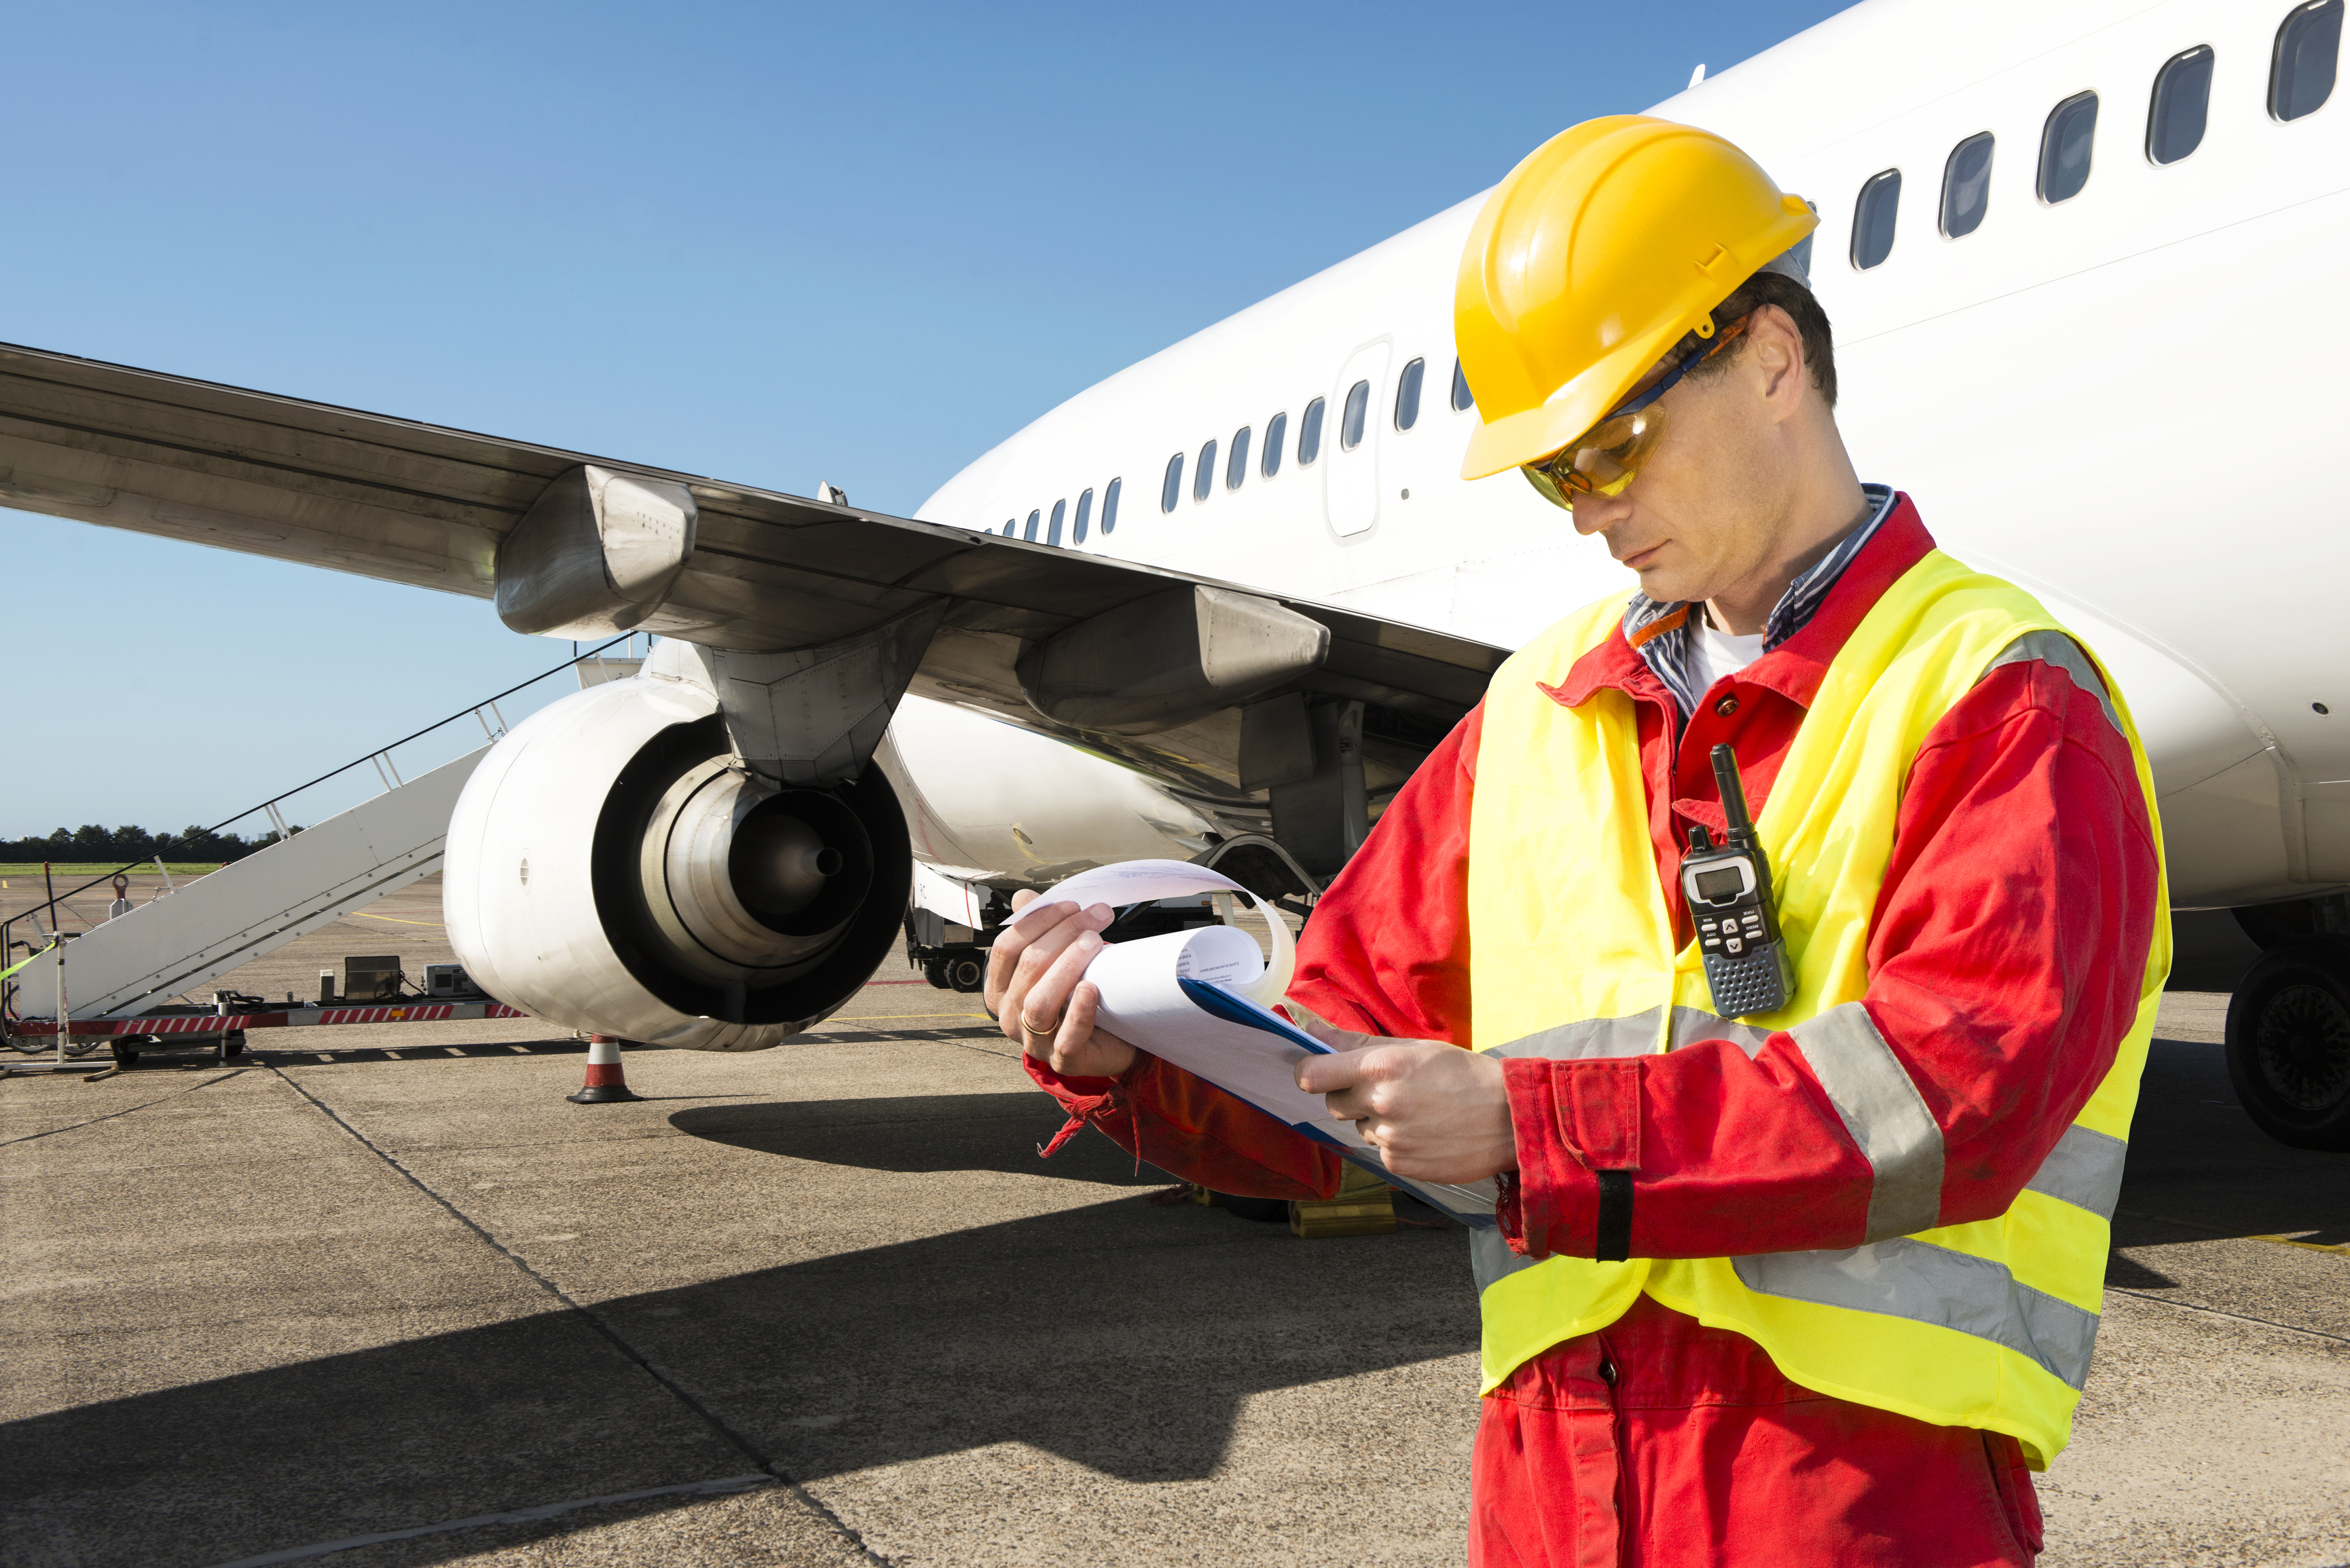 qa aviation safety In the aviation industry, a quality system comprises the set of policies, processes and procedures required for the planning and execution of safe and efficient air.